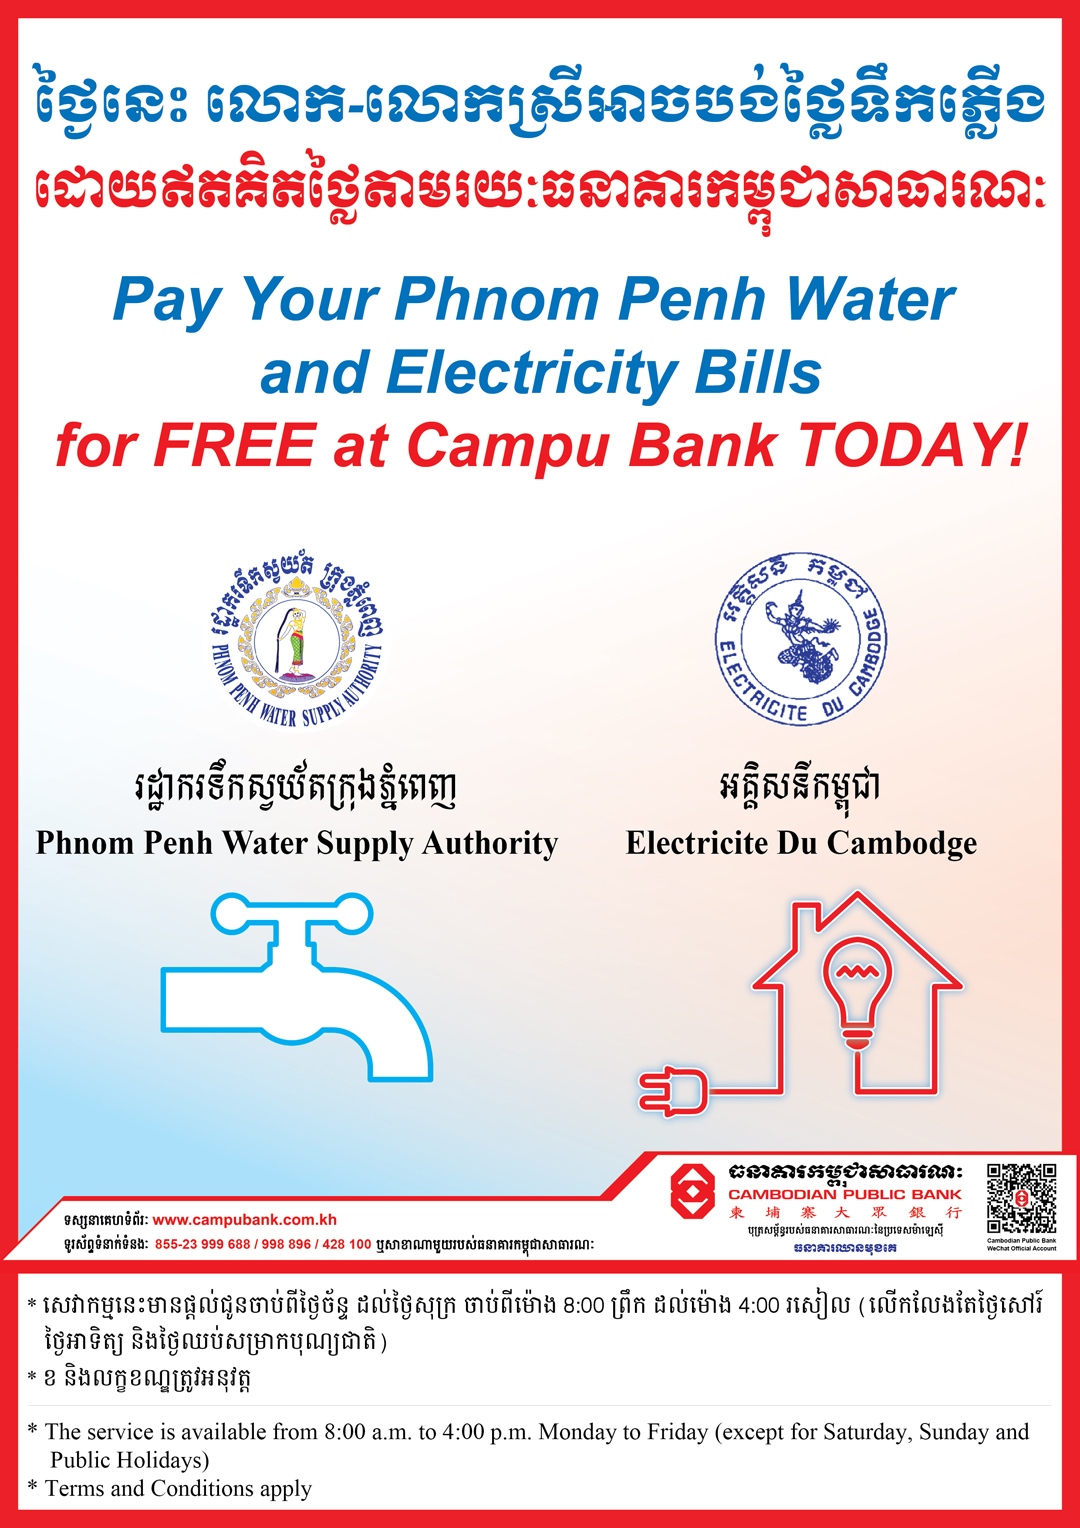 Cambodian Public Bank - Utility Bill Payment